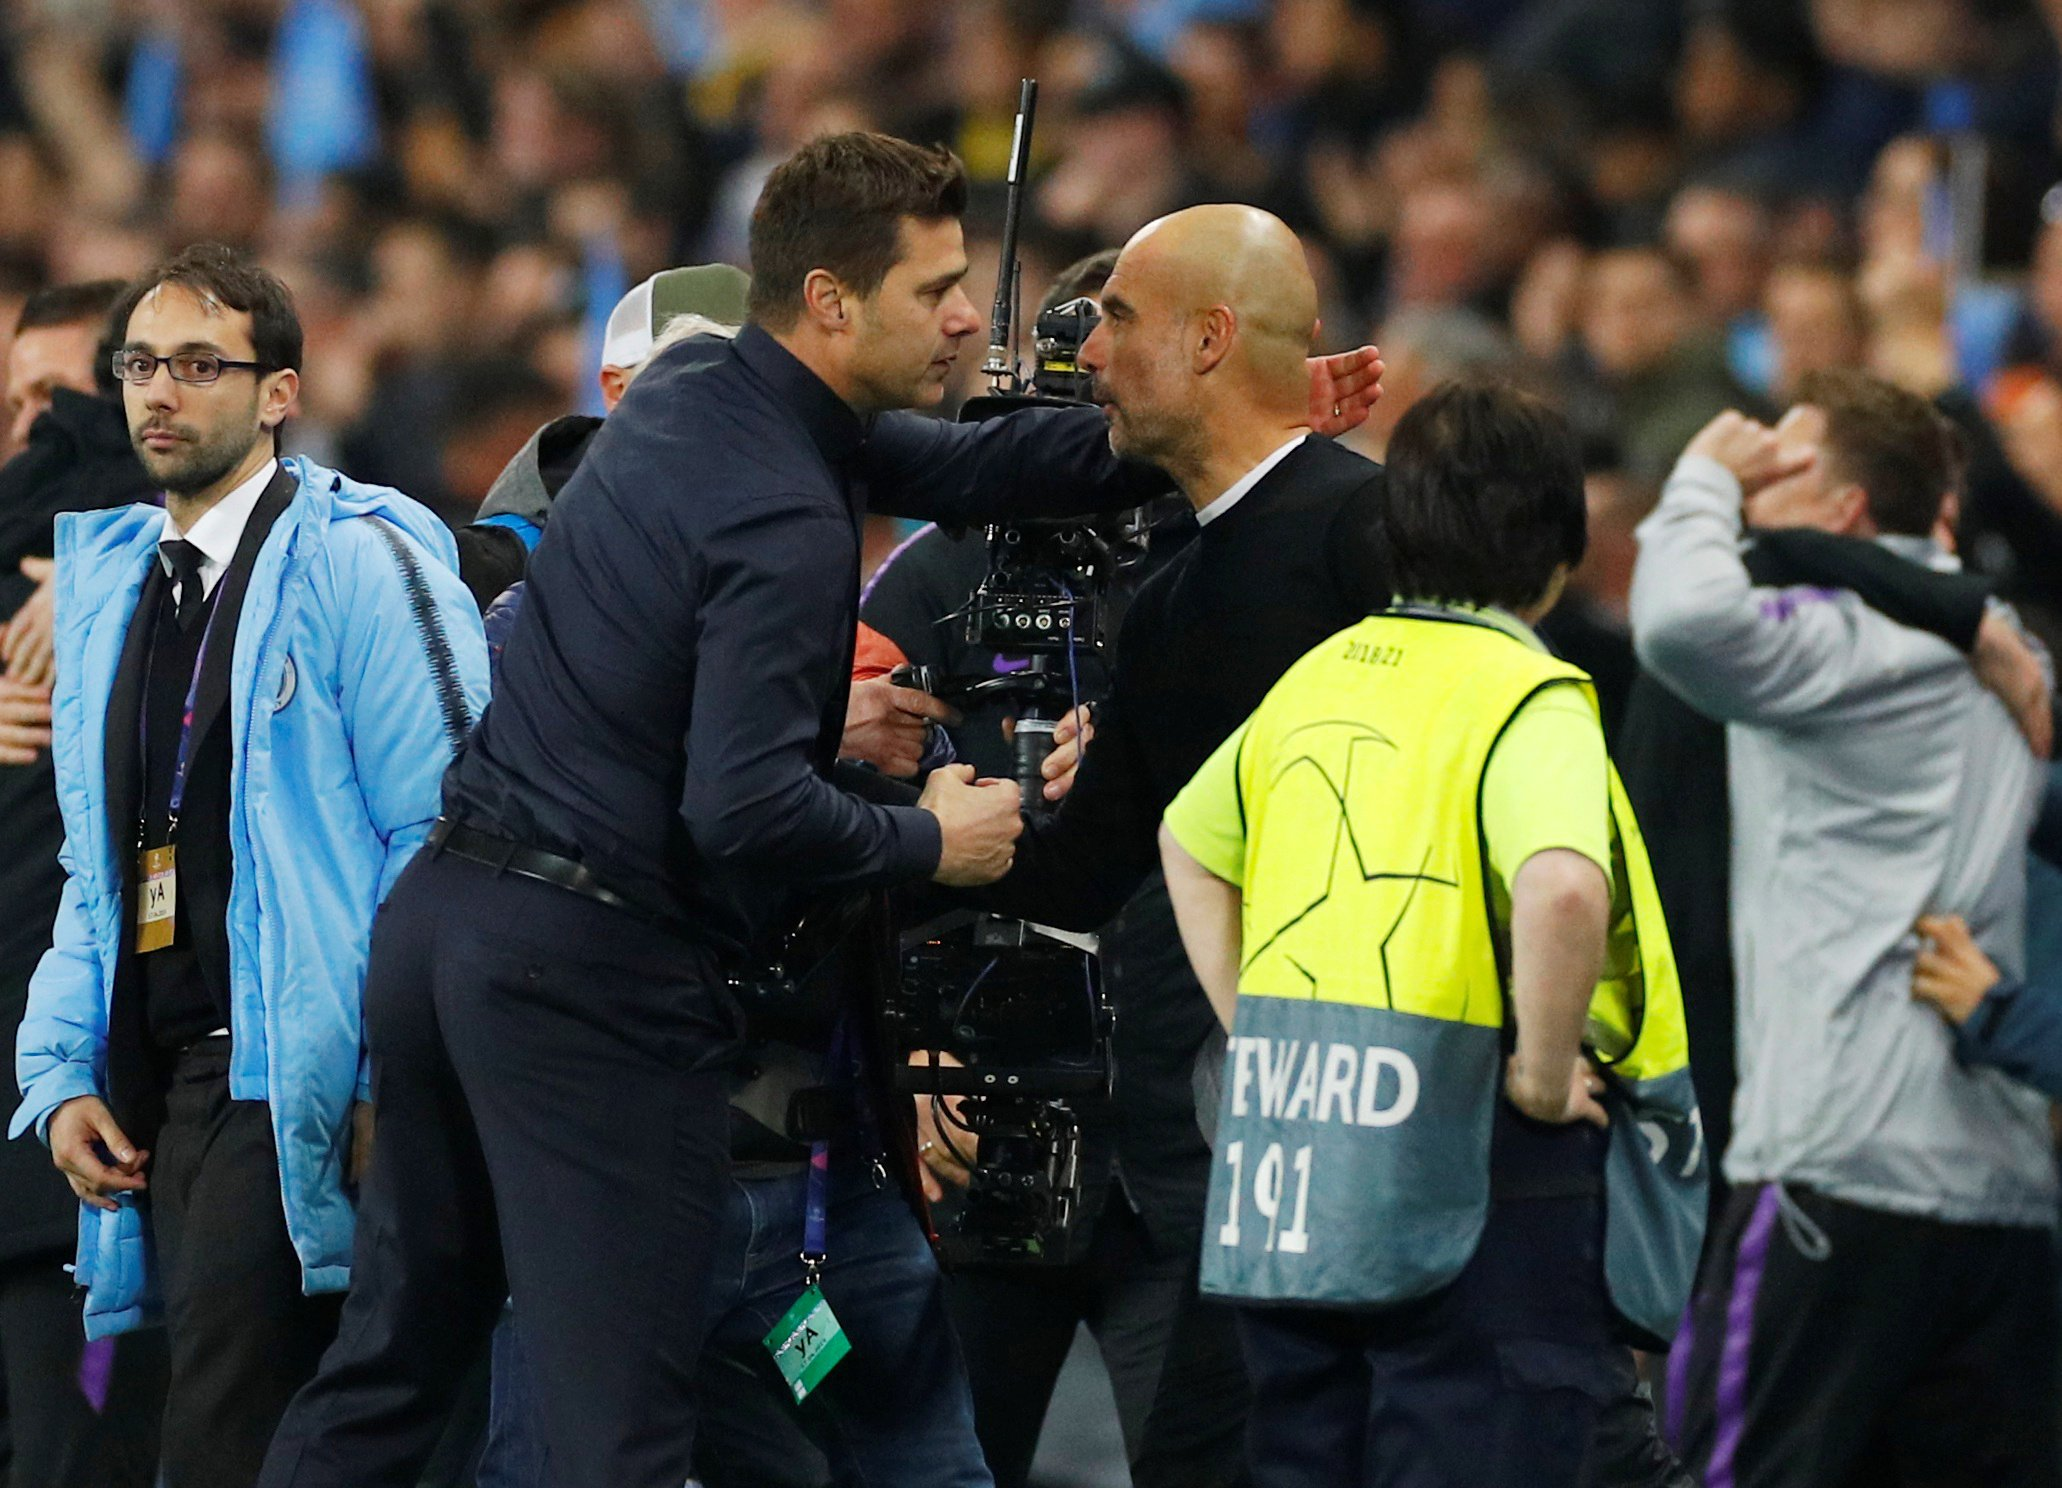 Mauricio Pochettino praises Pep Guardiola's reaction after dramatic Champions League exit